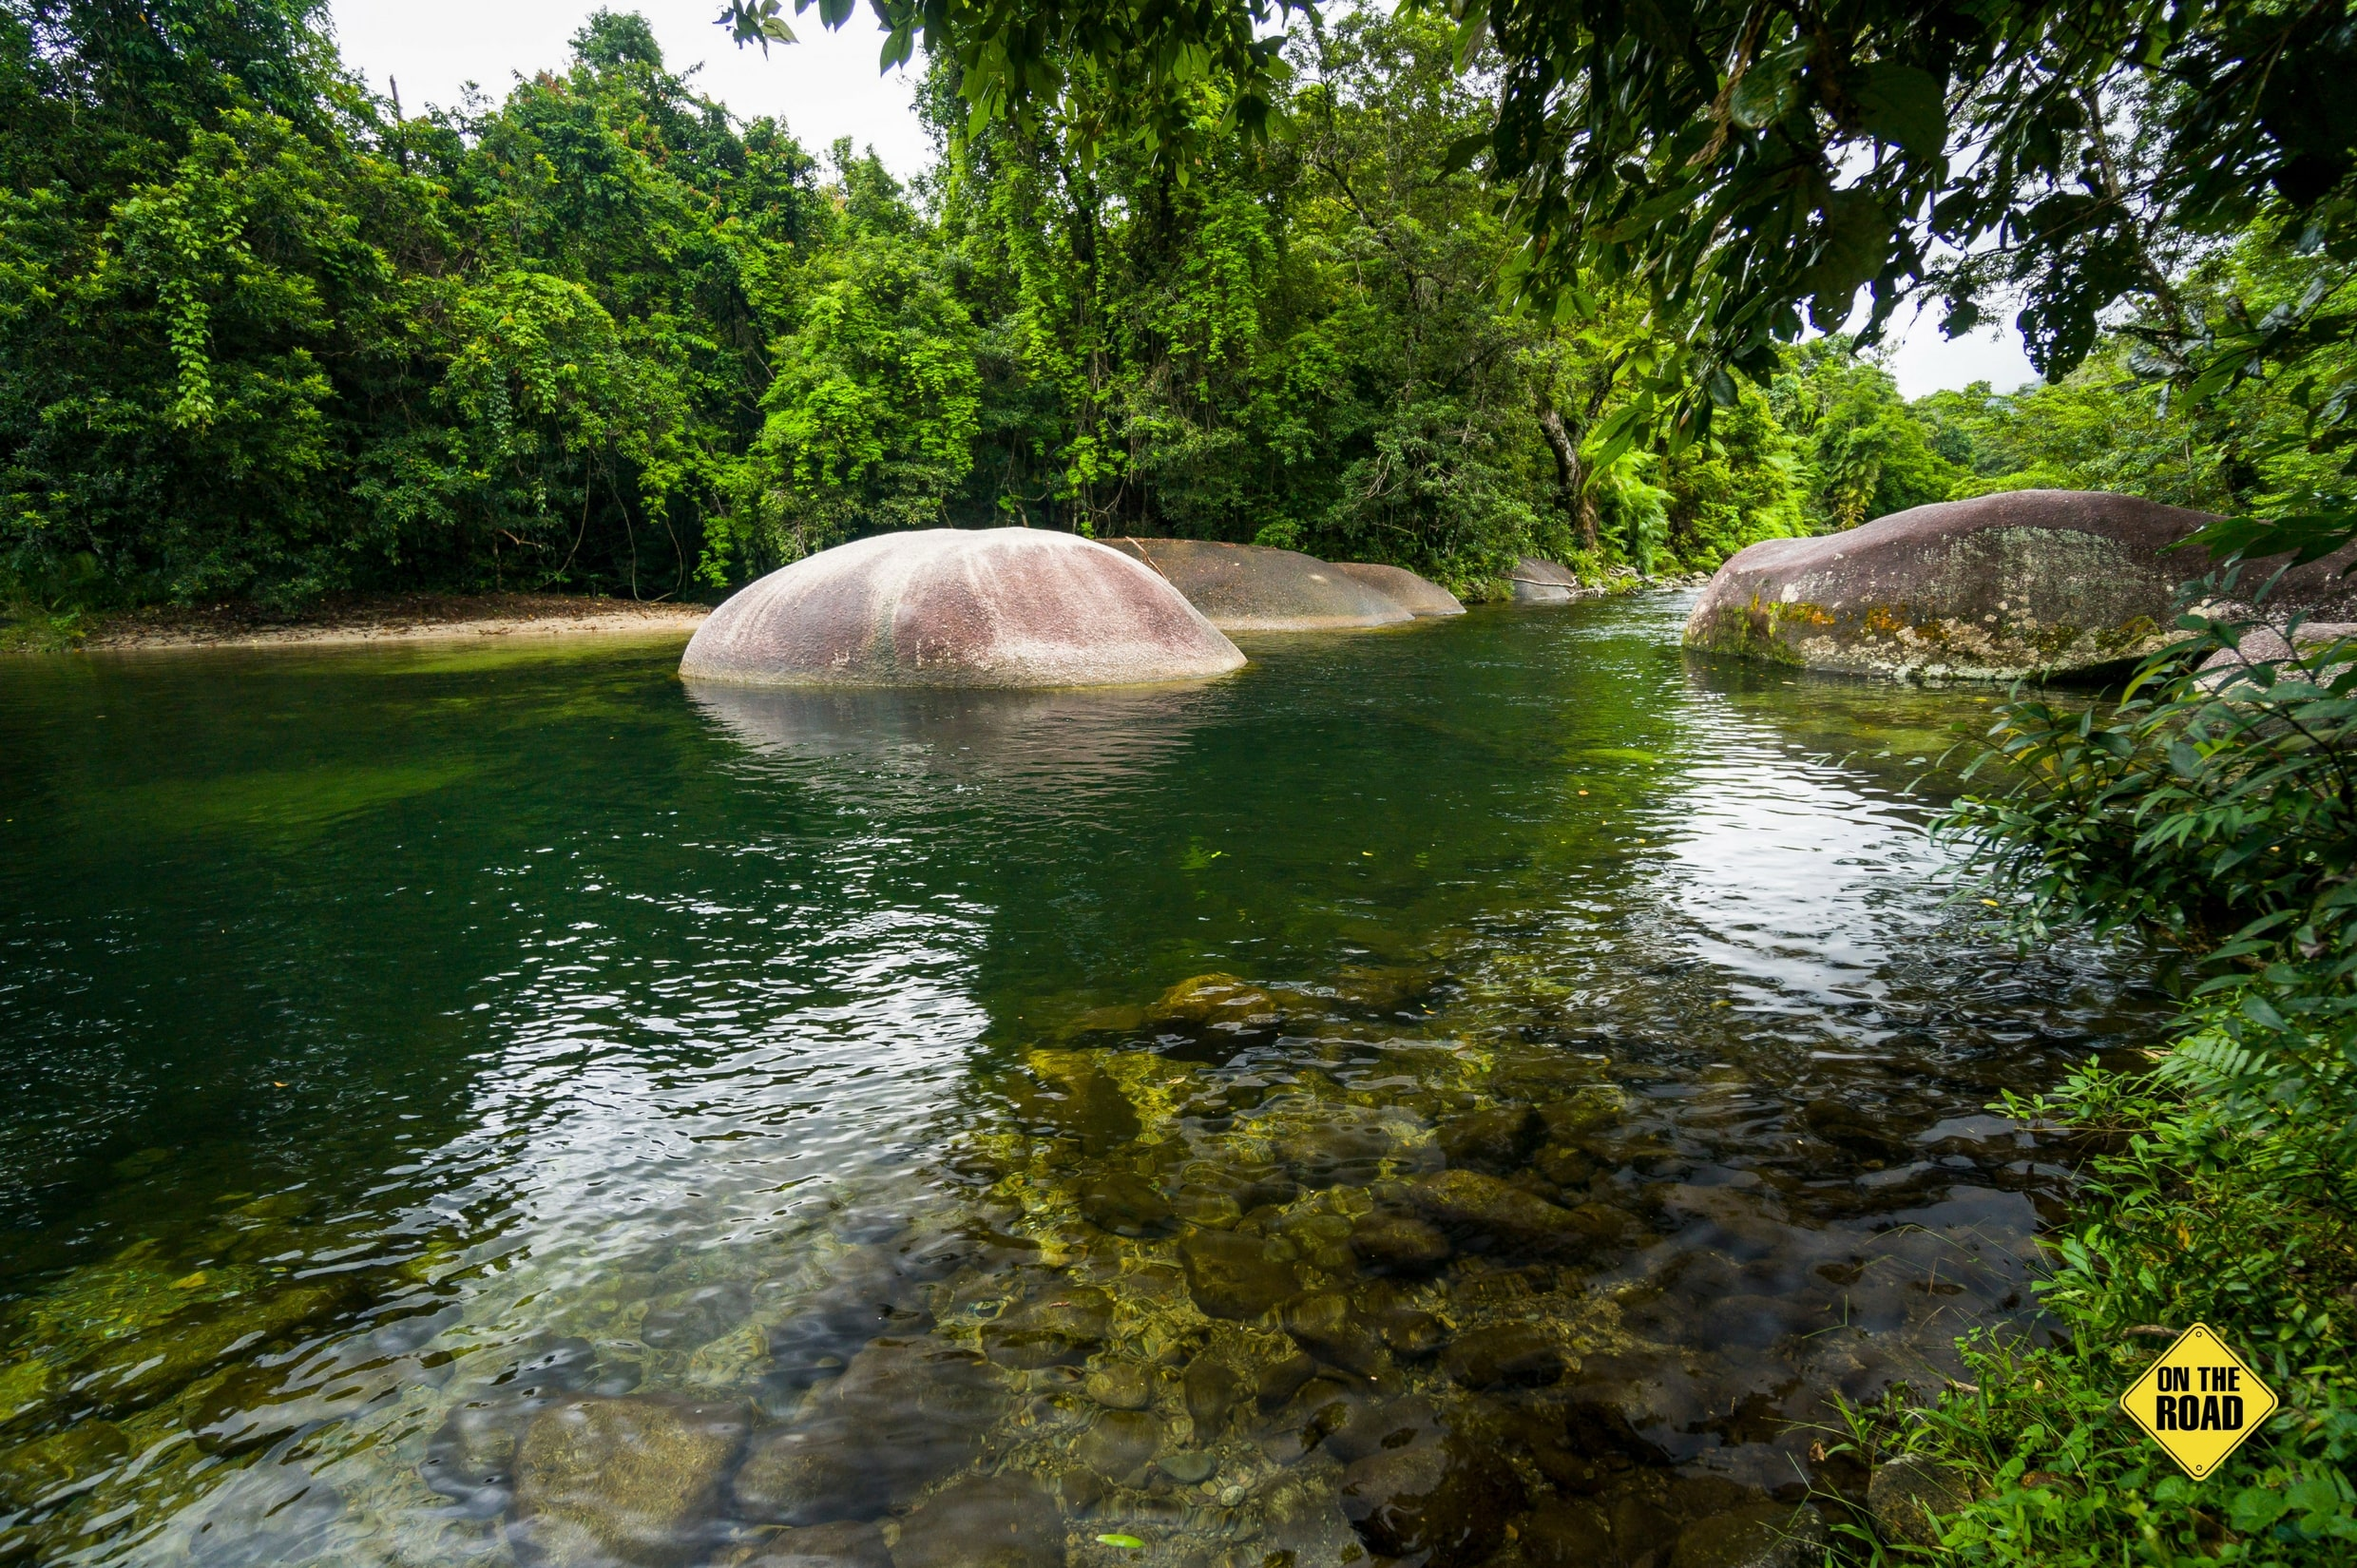 Enormous granite boulders slow the flow of Babinda Creek